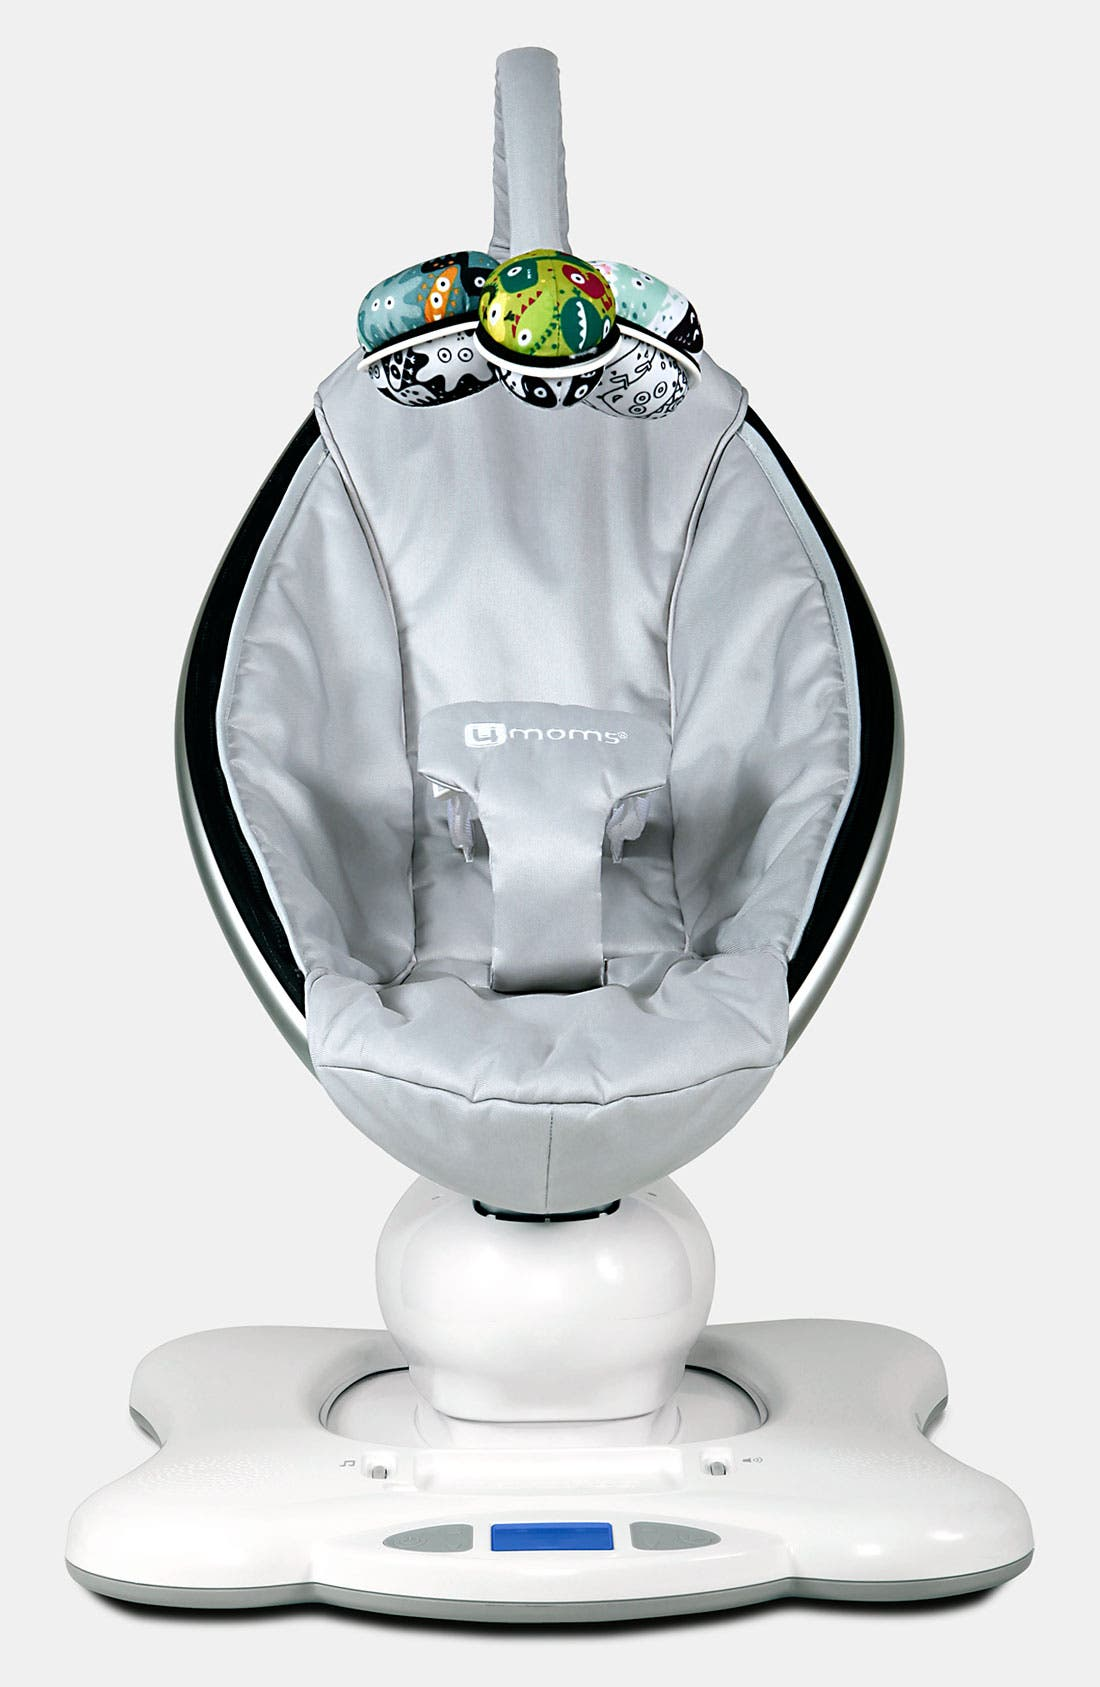 Main Image - 4moms 'Classic mamaRoo' Bouncer Seat (Infant)